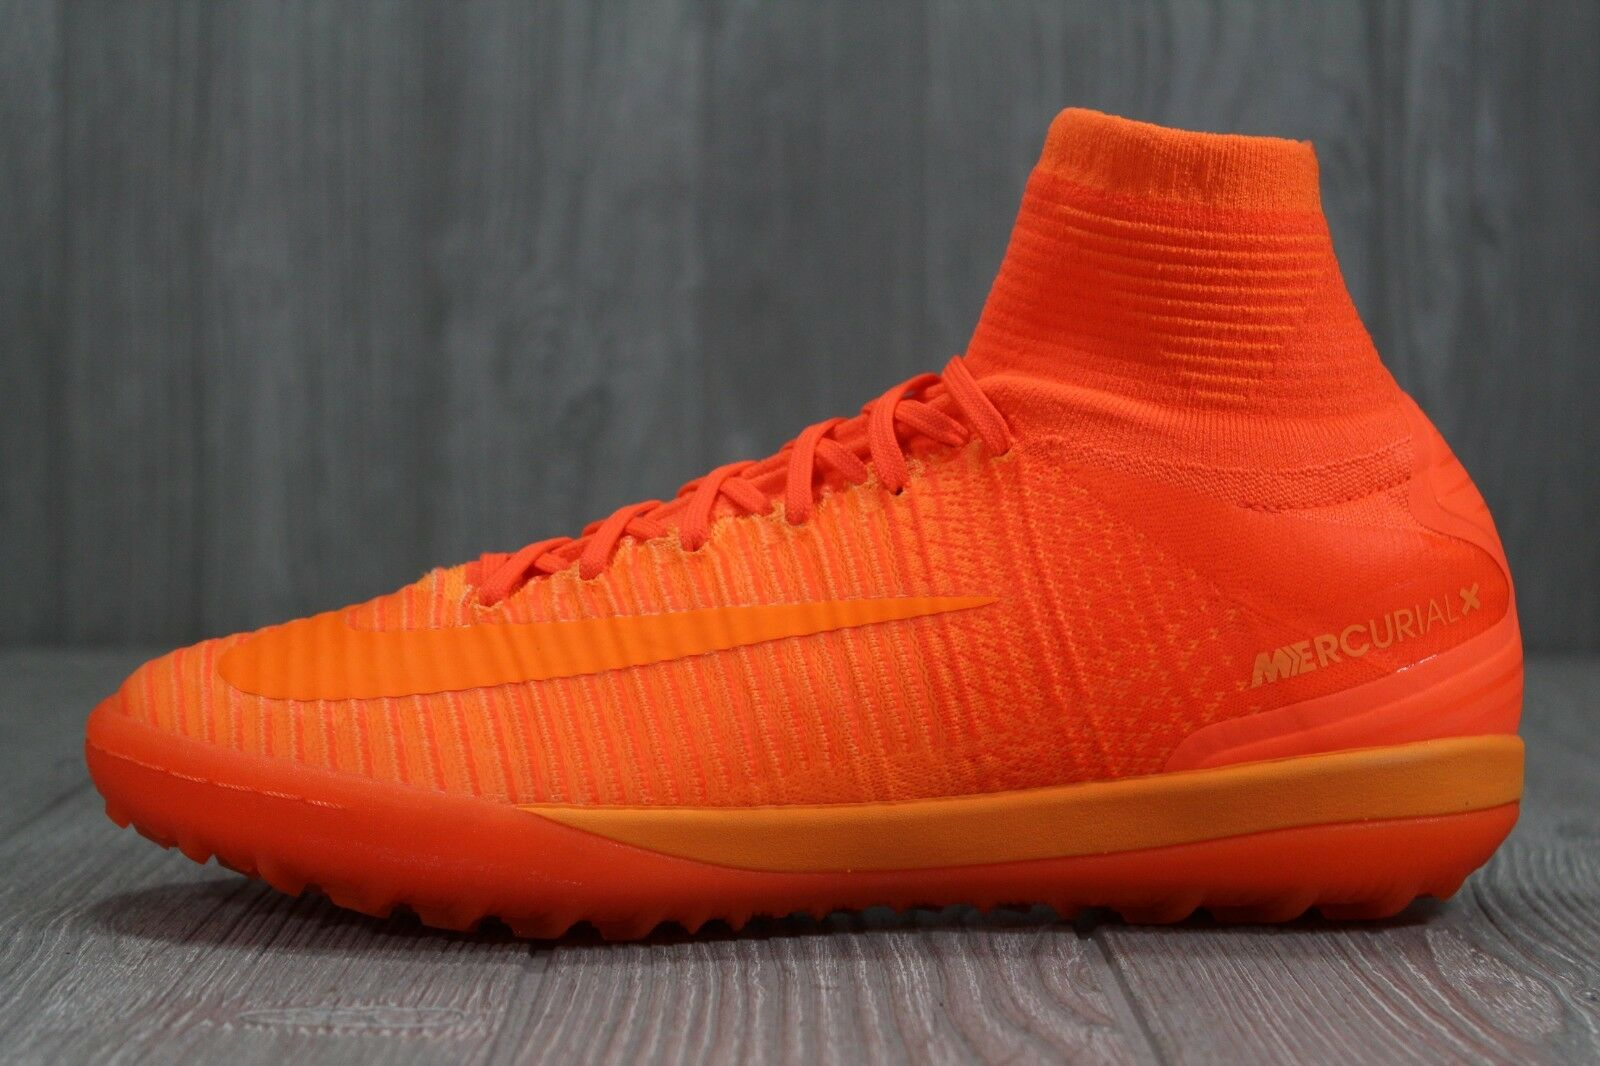 37 Nike MercurialX Proximo II TF Turf Mens Soccer shoes orange 9 12 831977-888